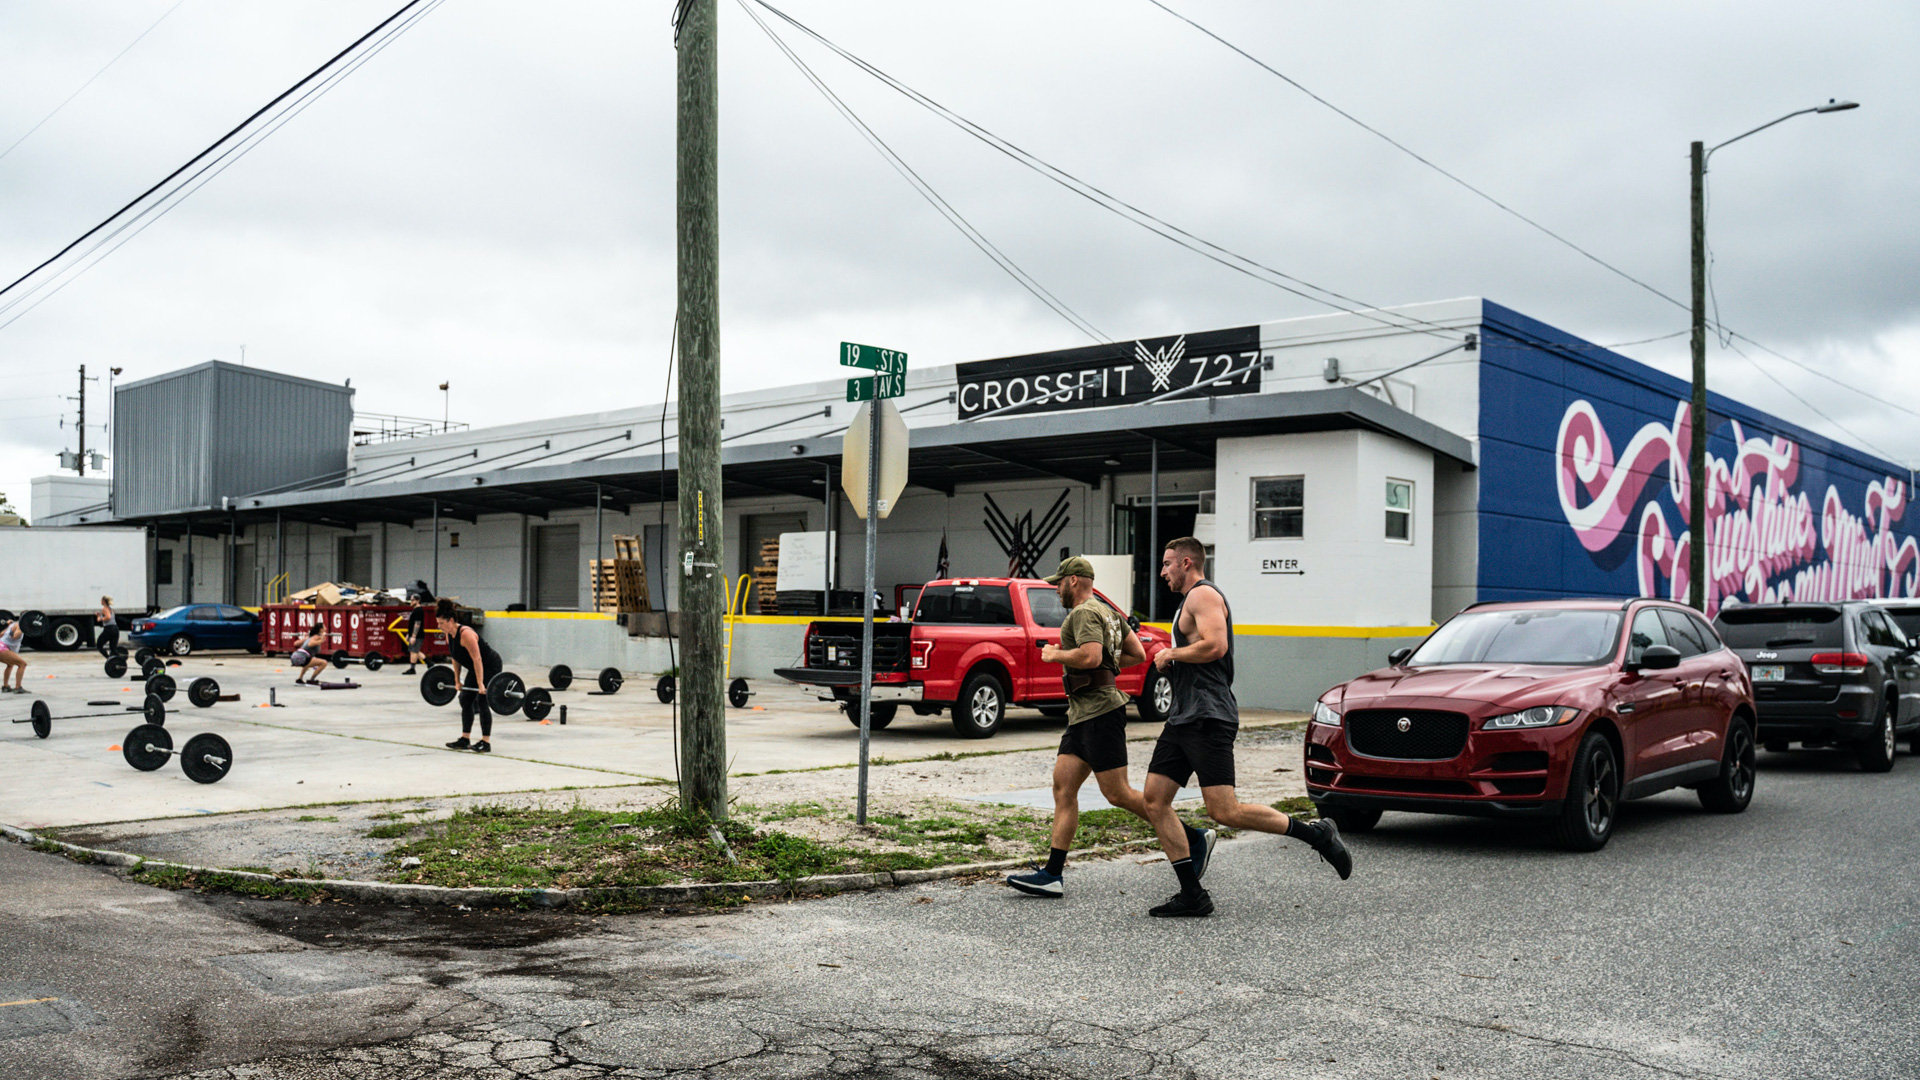 Two CrossFit members running outside next to a blue and pink mural